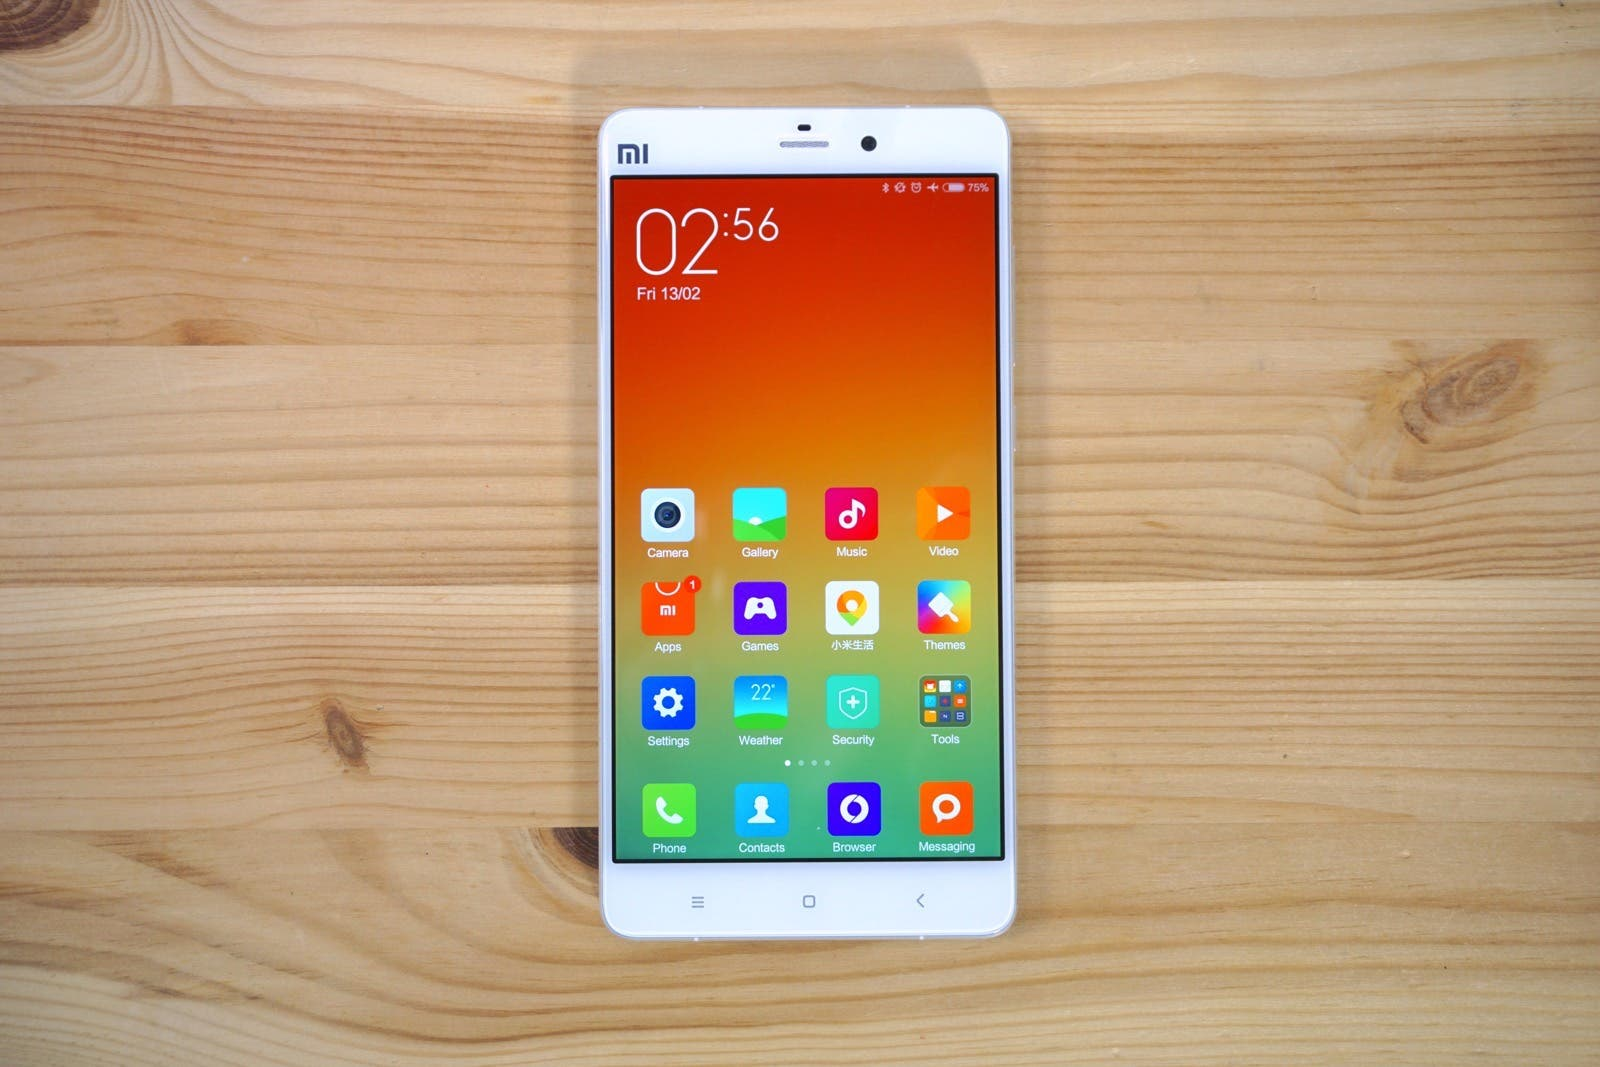 Xiaomi Mi Note Display Homescreen